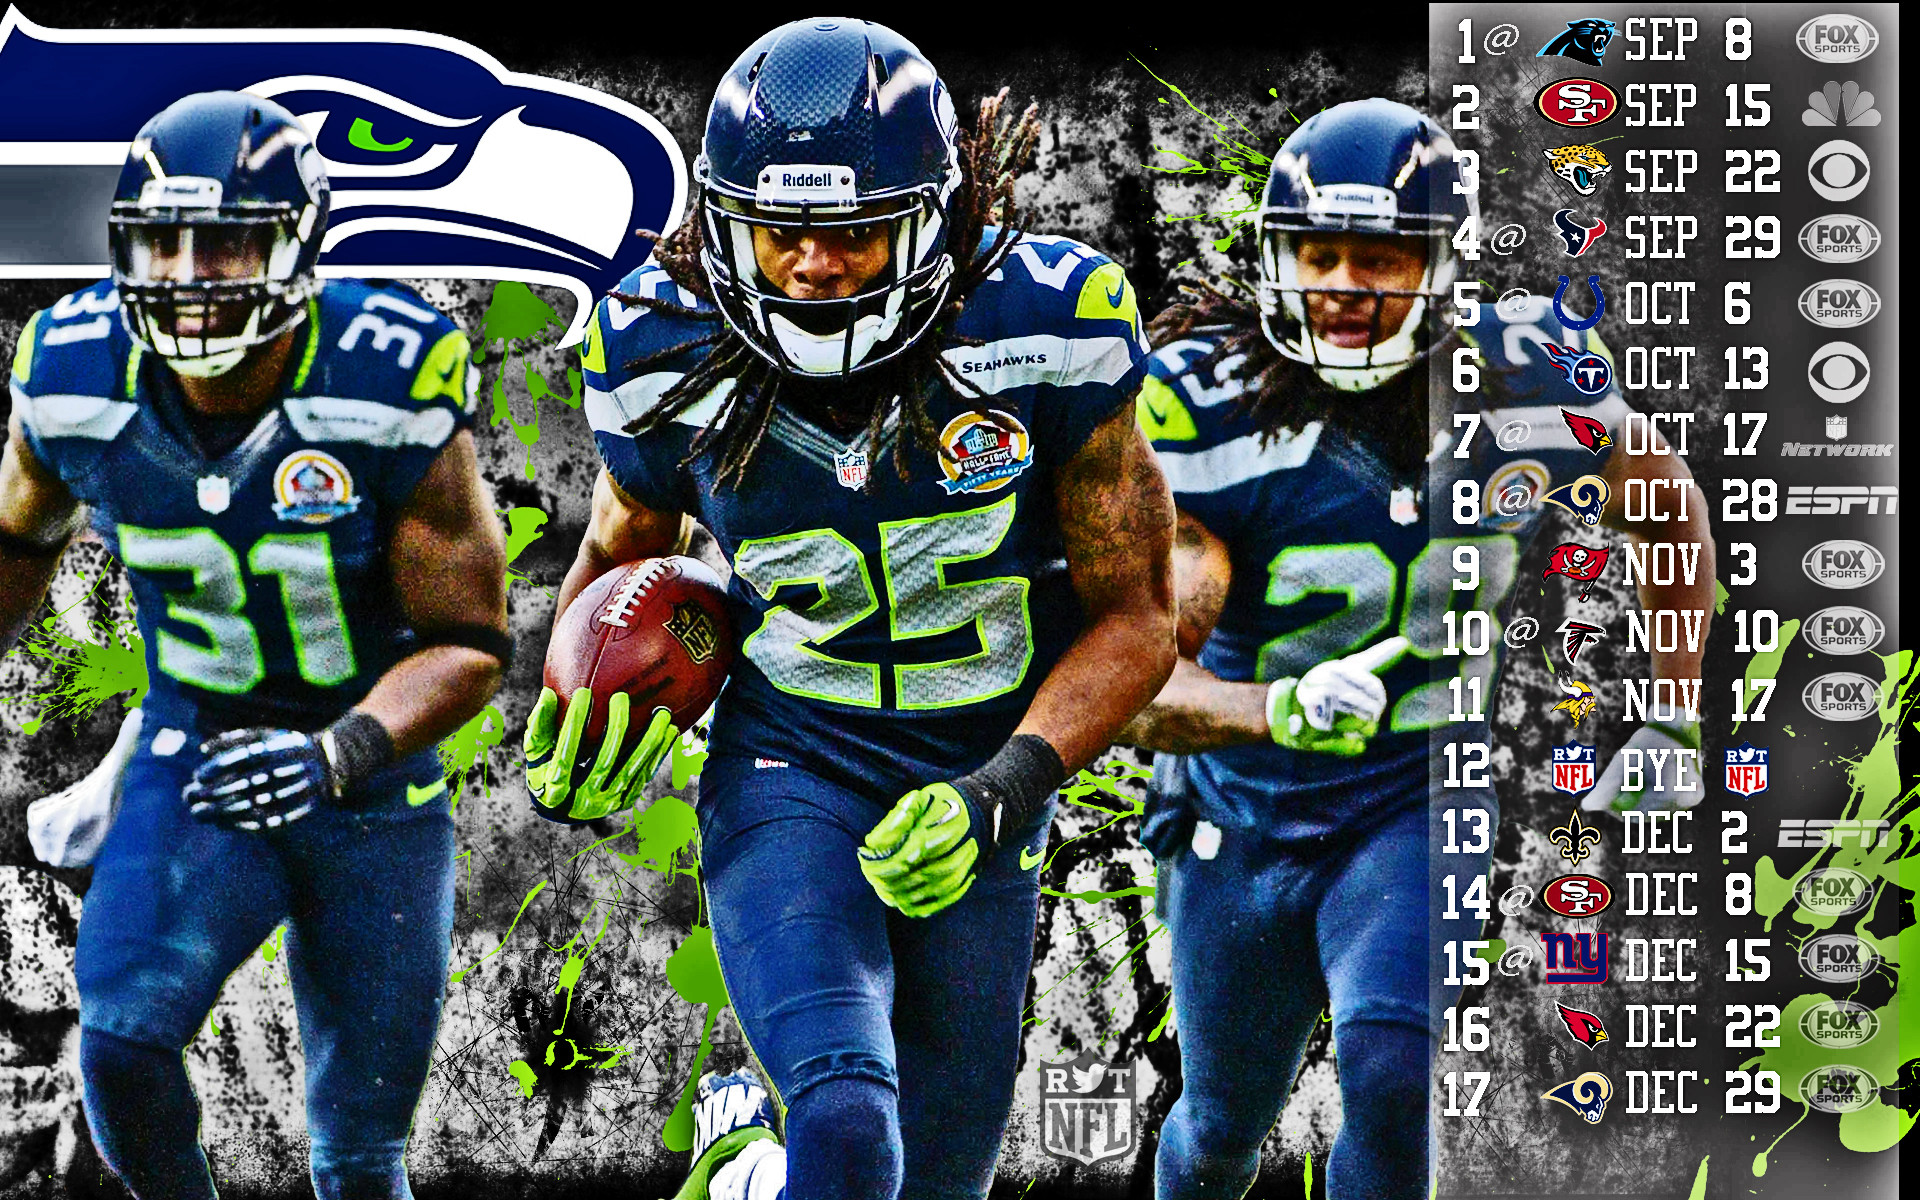 College Football Players Wallpaper: NFL Football Players Wallpaper (55+ Images